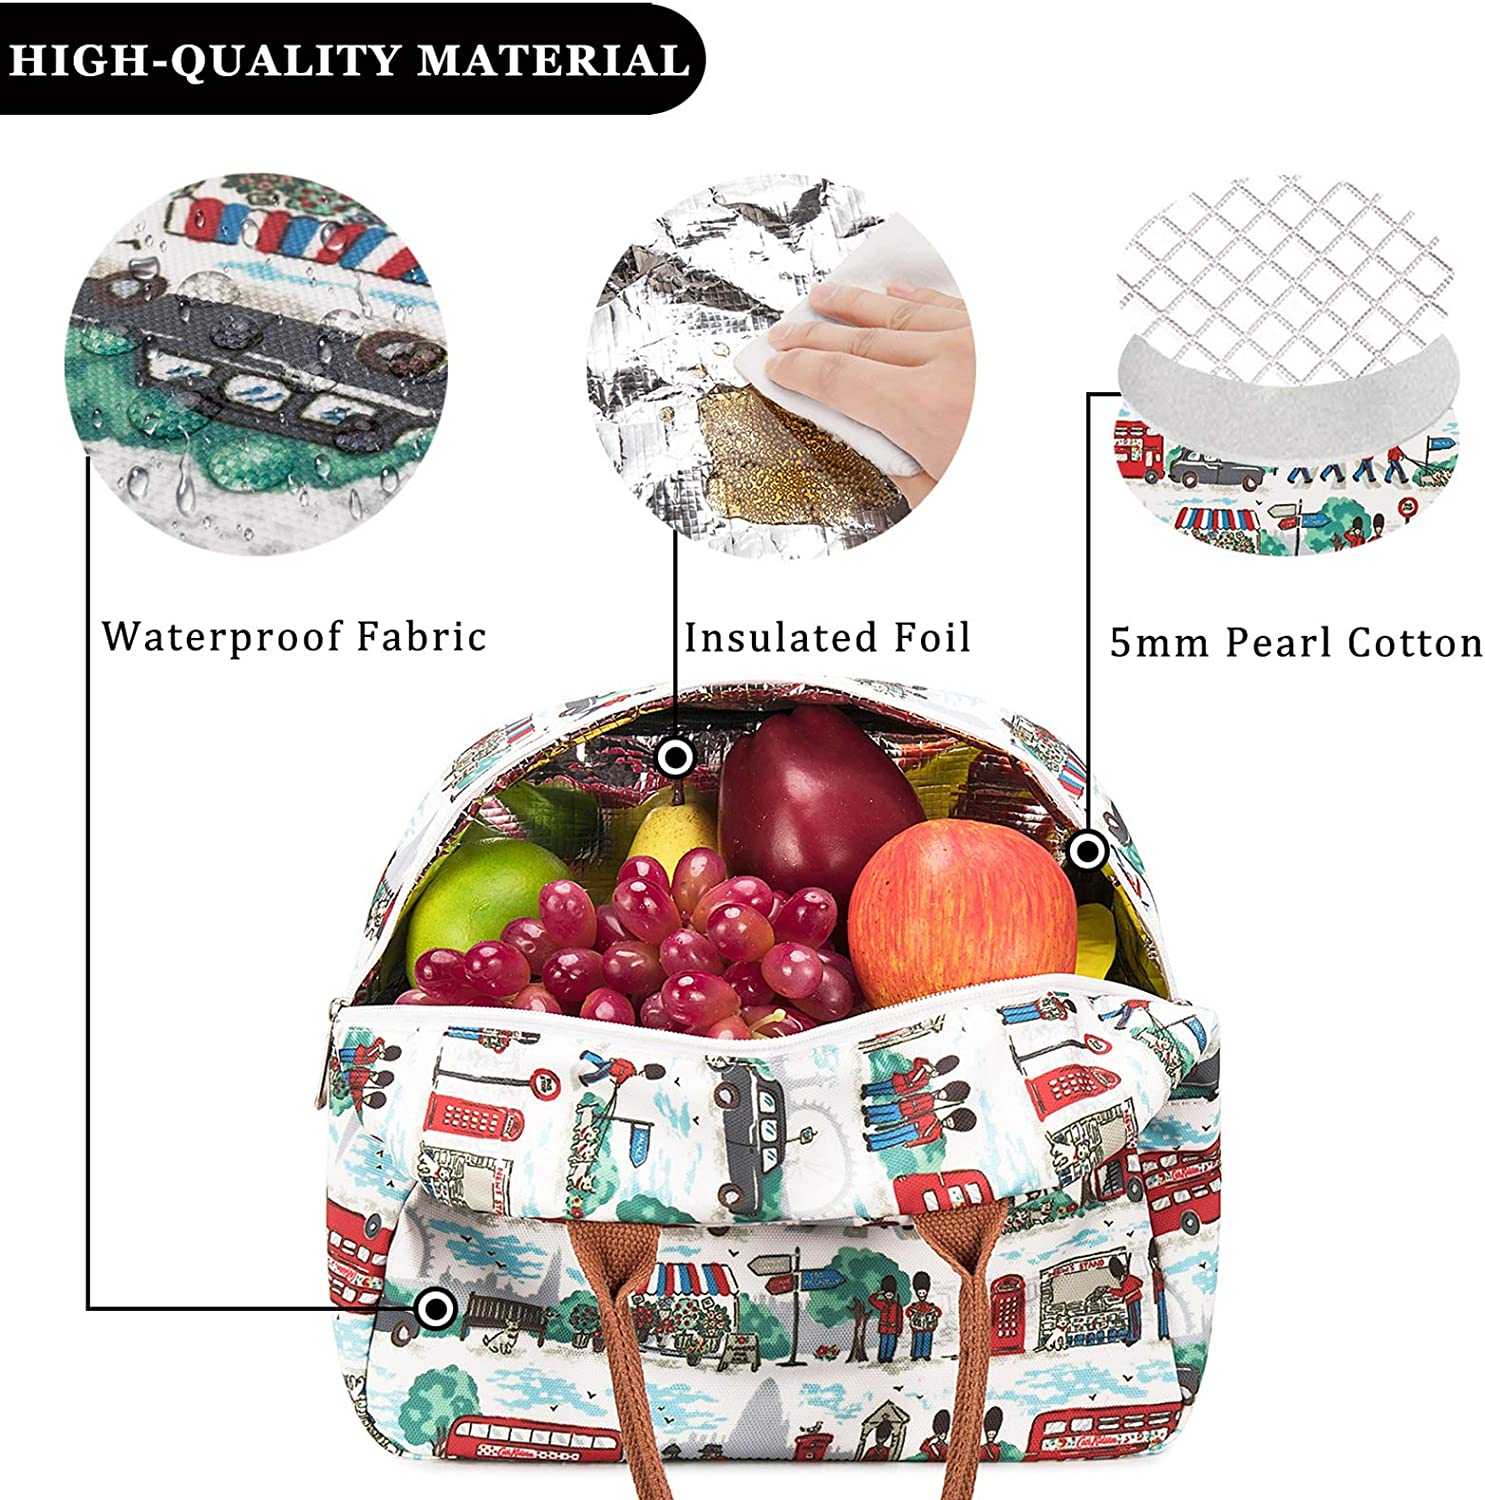 Insulated Lunch Bags for Women Cooler Tote Bag with Front Pocket Lunch Box Reusable Lunch Bag for Men Adults Girls Work School Picnic Ballerina Girl